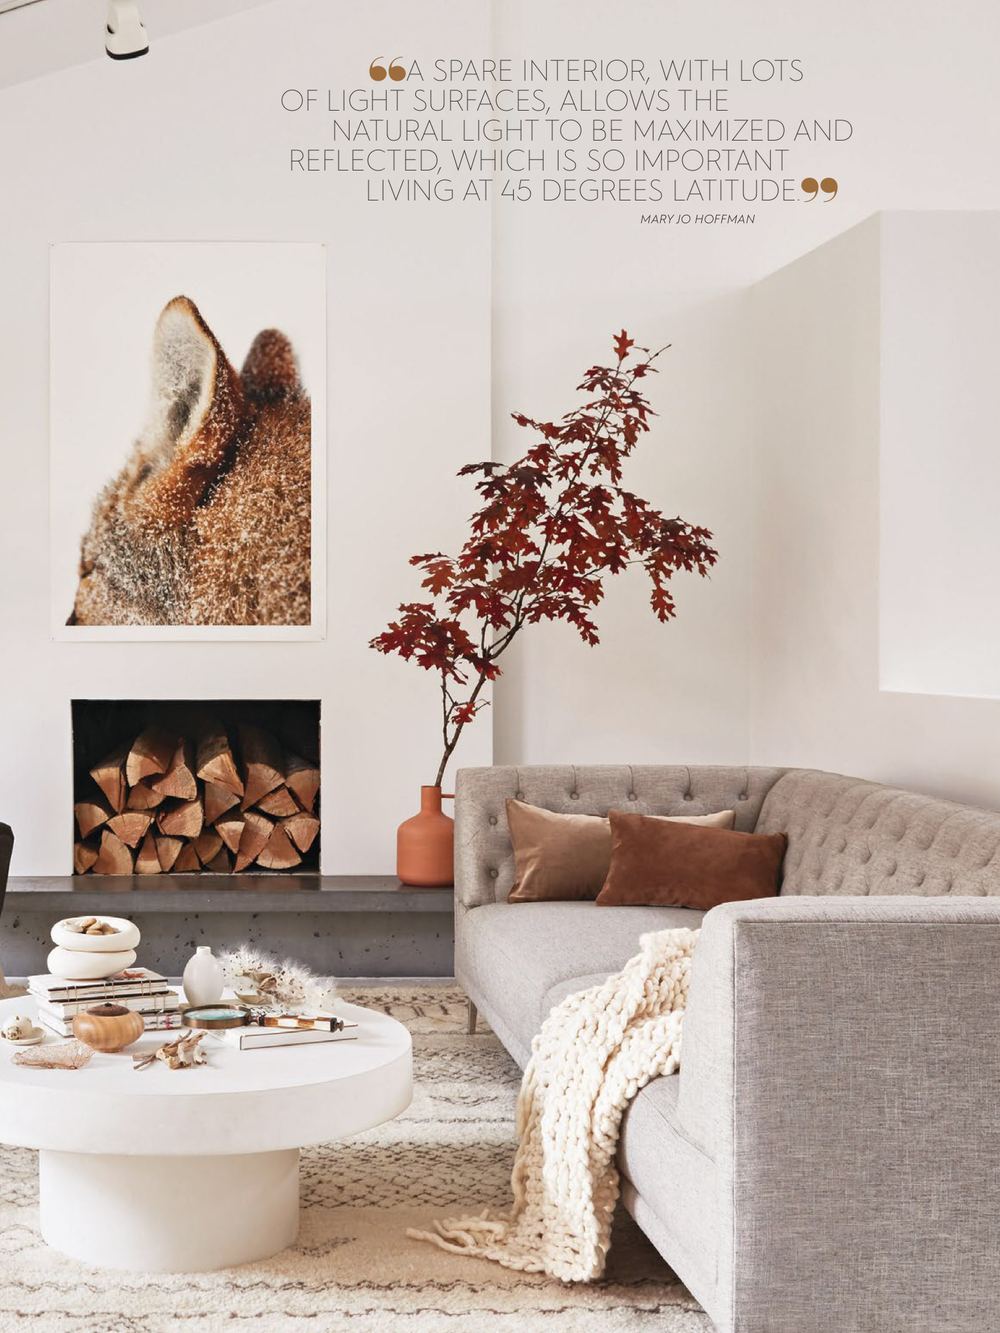 Better Homes & Gardens November 2018 Photography: Victoria Pearson Styling: Liz Gardner Assistant: Laney Sheehan